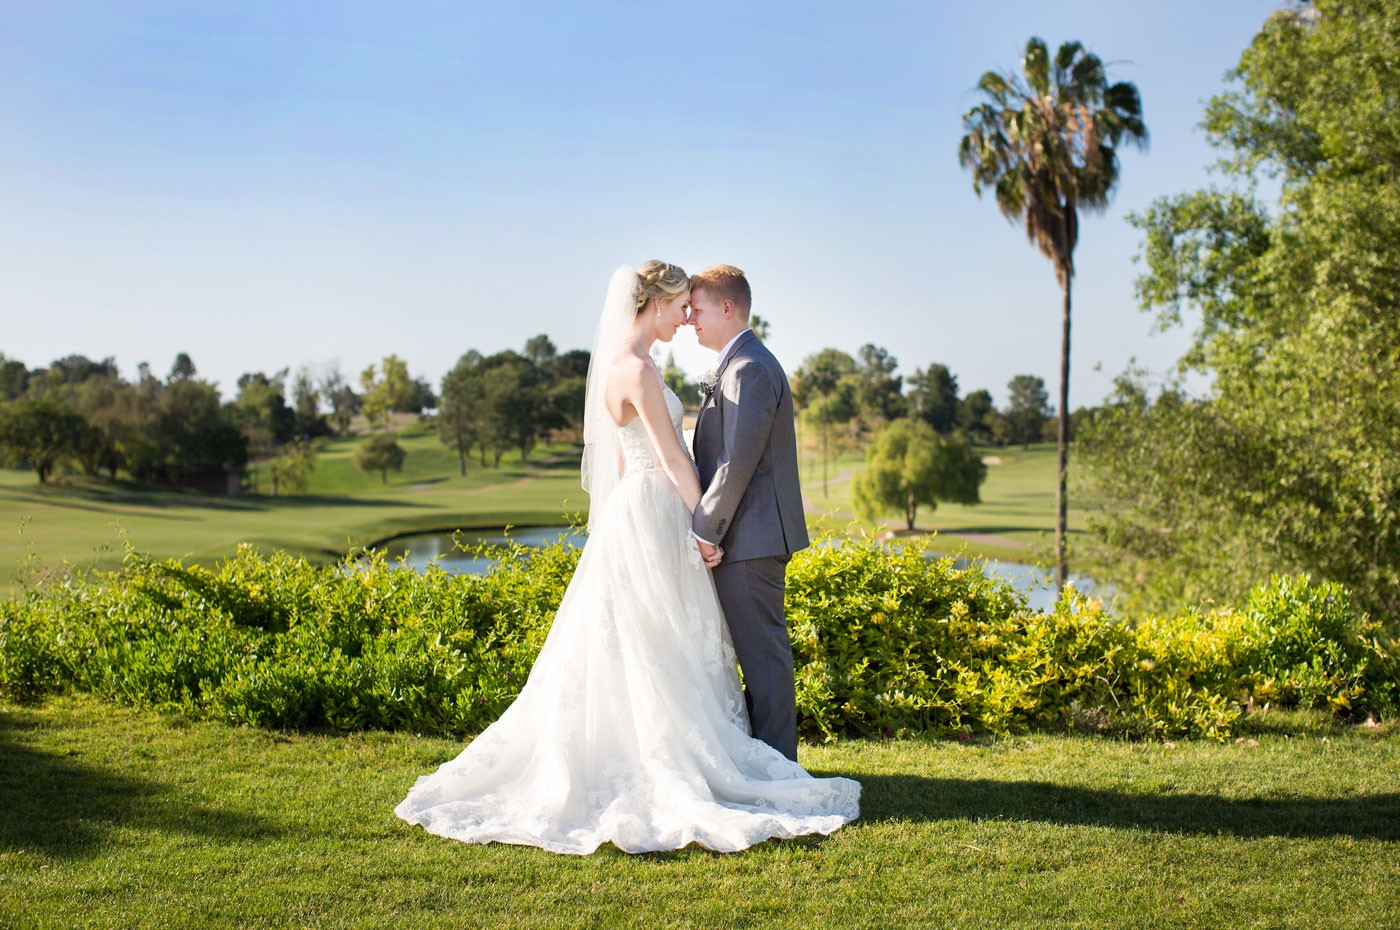 bryan_noelle_aliso_viejo_country_club_wedding_0018